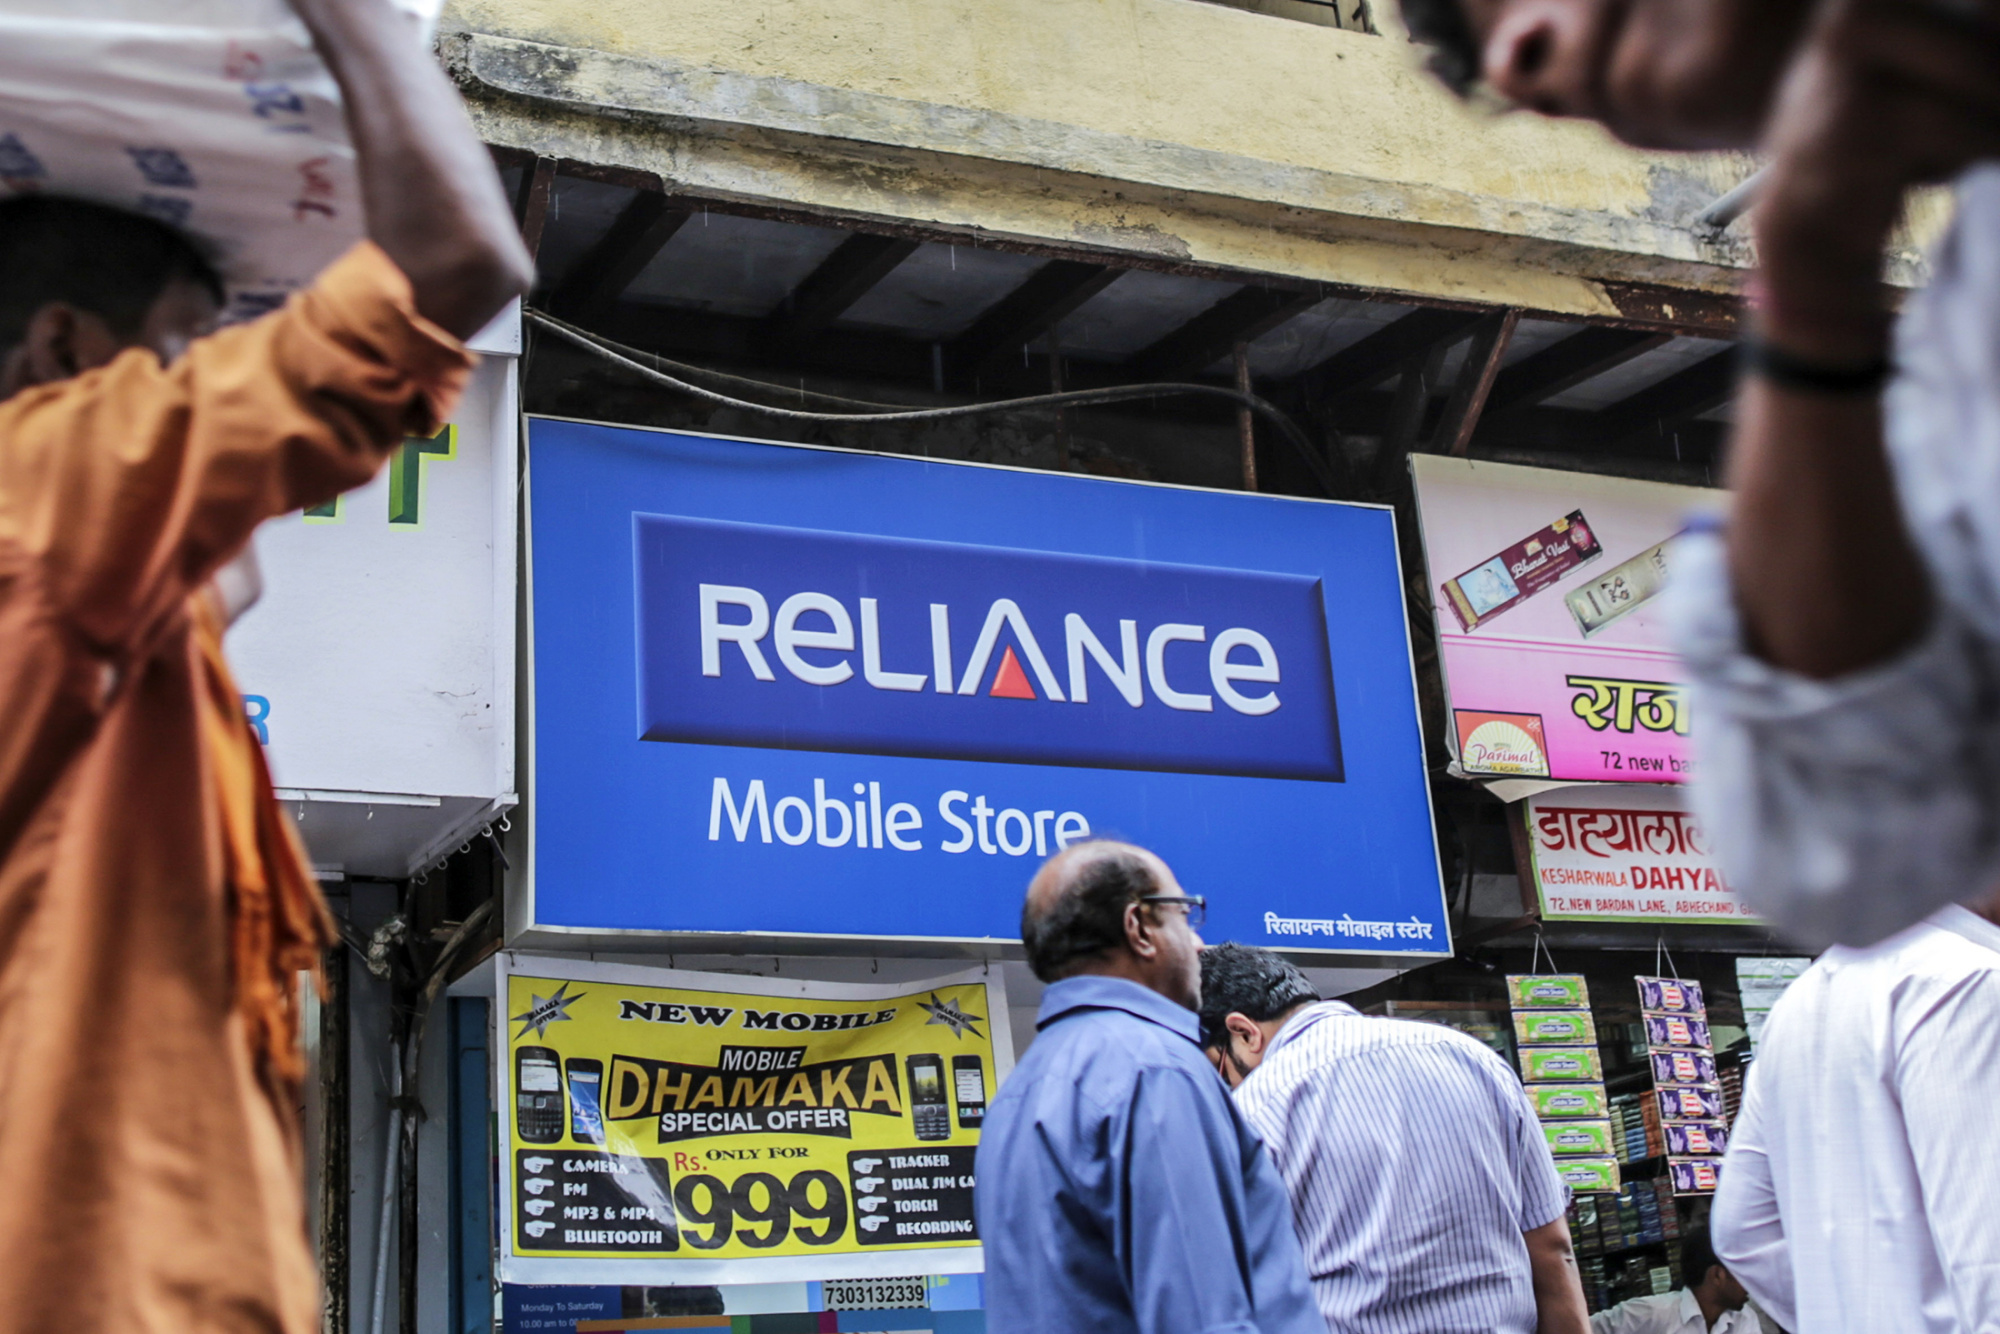 Pedestrians walk past a Reliance Communications Ltd. Mobile Store in Mumbai, India, on Saturday, Feb. 28, 2015. The government auction of telecom wireless spectrum starting March 4 is expected to raise as much as $15.6 billion from service providers including those controlled by billionaires Kumar Mangalam Birla, Sunil Mittal and Anil Ambani, according to ICRA Ltd. Photographer: Dhiraj Singh/Bloomberg